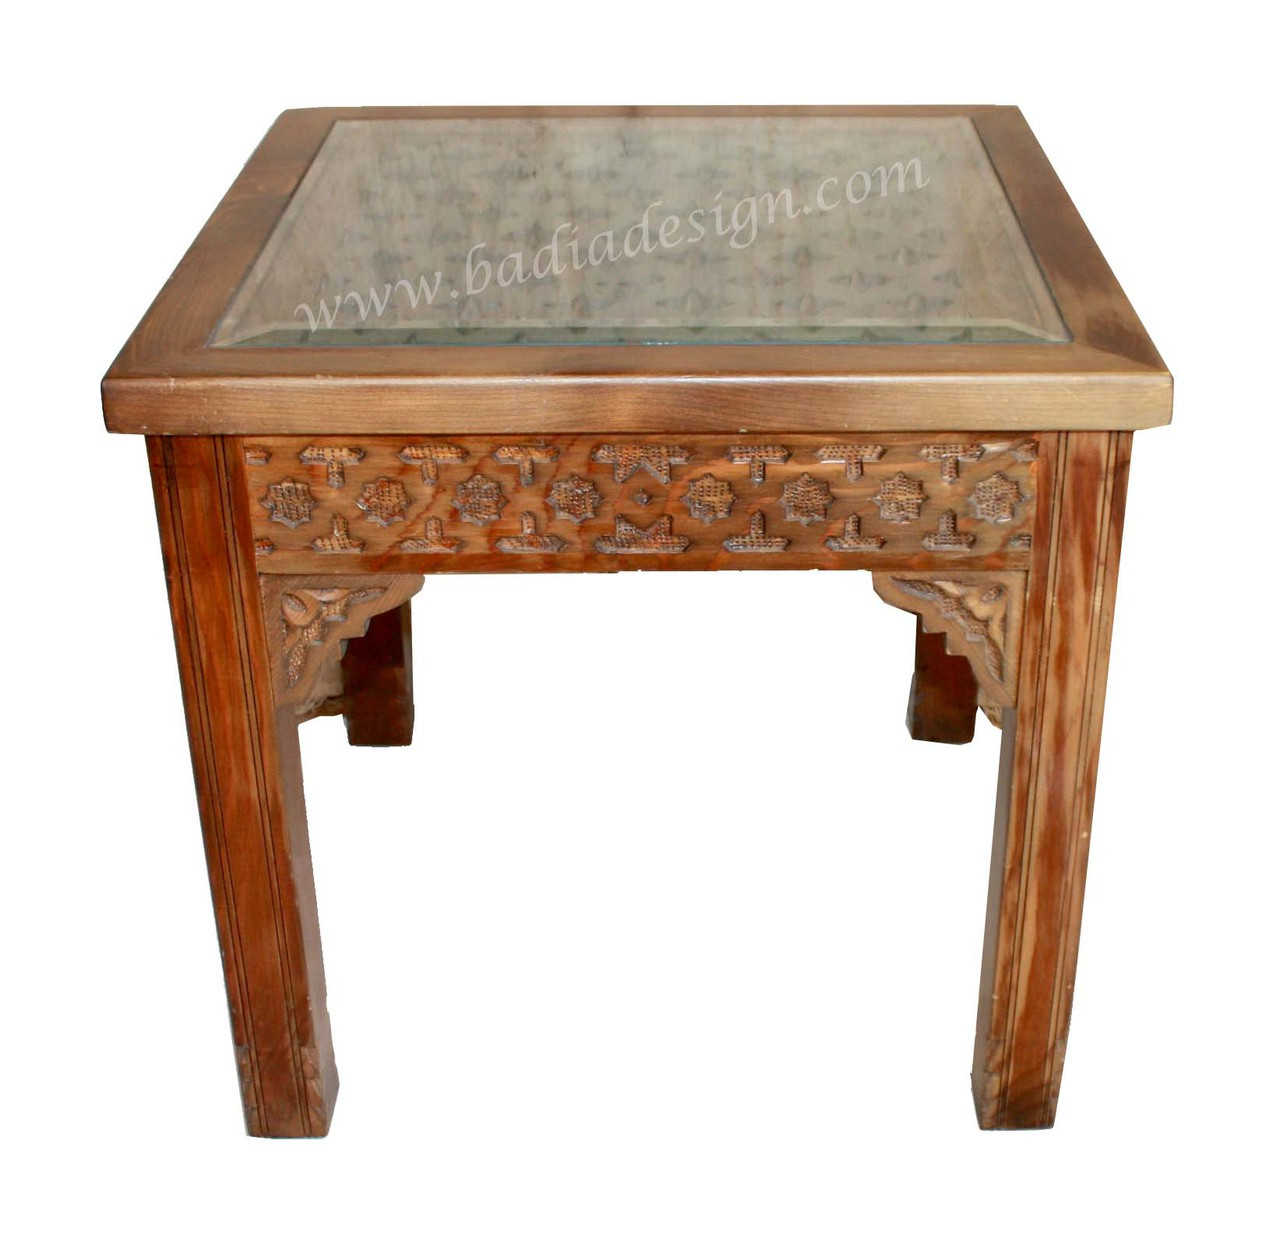 a180cadadfeae Carved Wood Side Table with Glass Top - CW-ST037. Image 1. Loading zoom